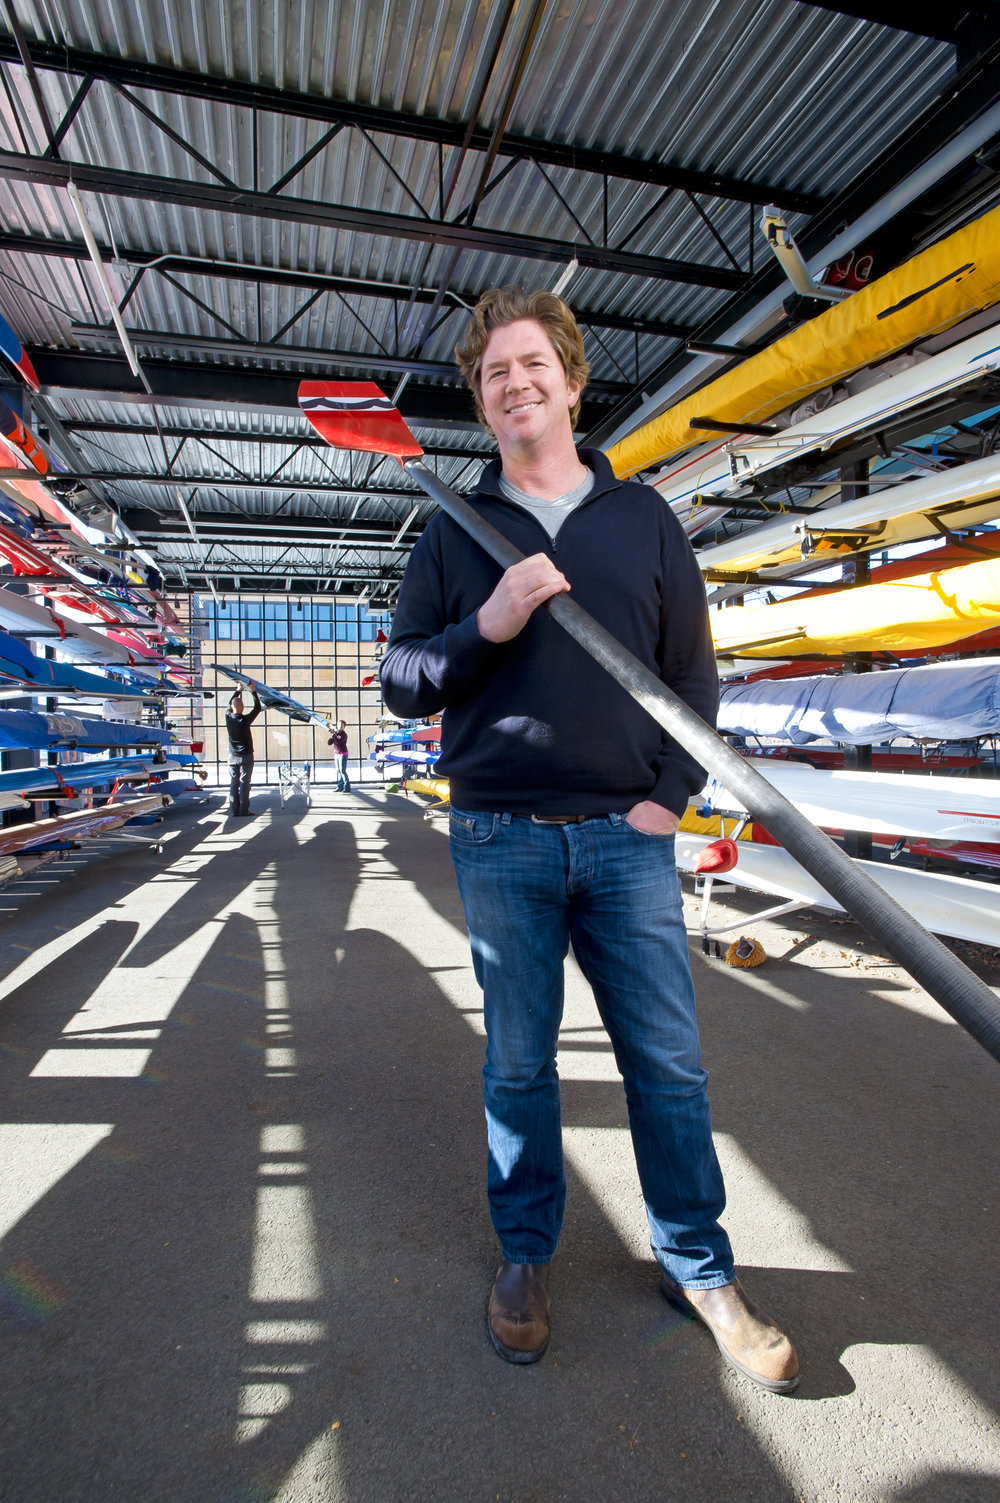 Bruce H. Smith, Executive Director of Community Rowing